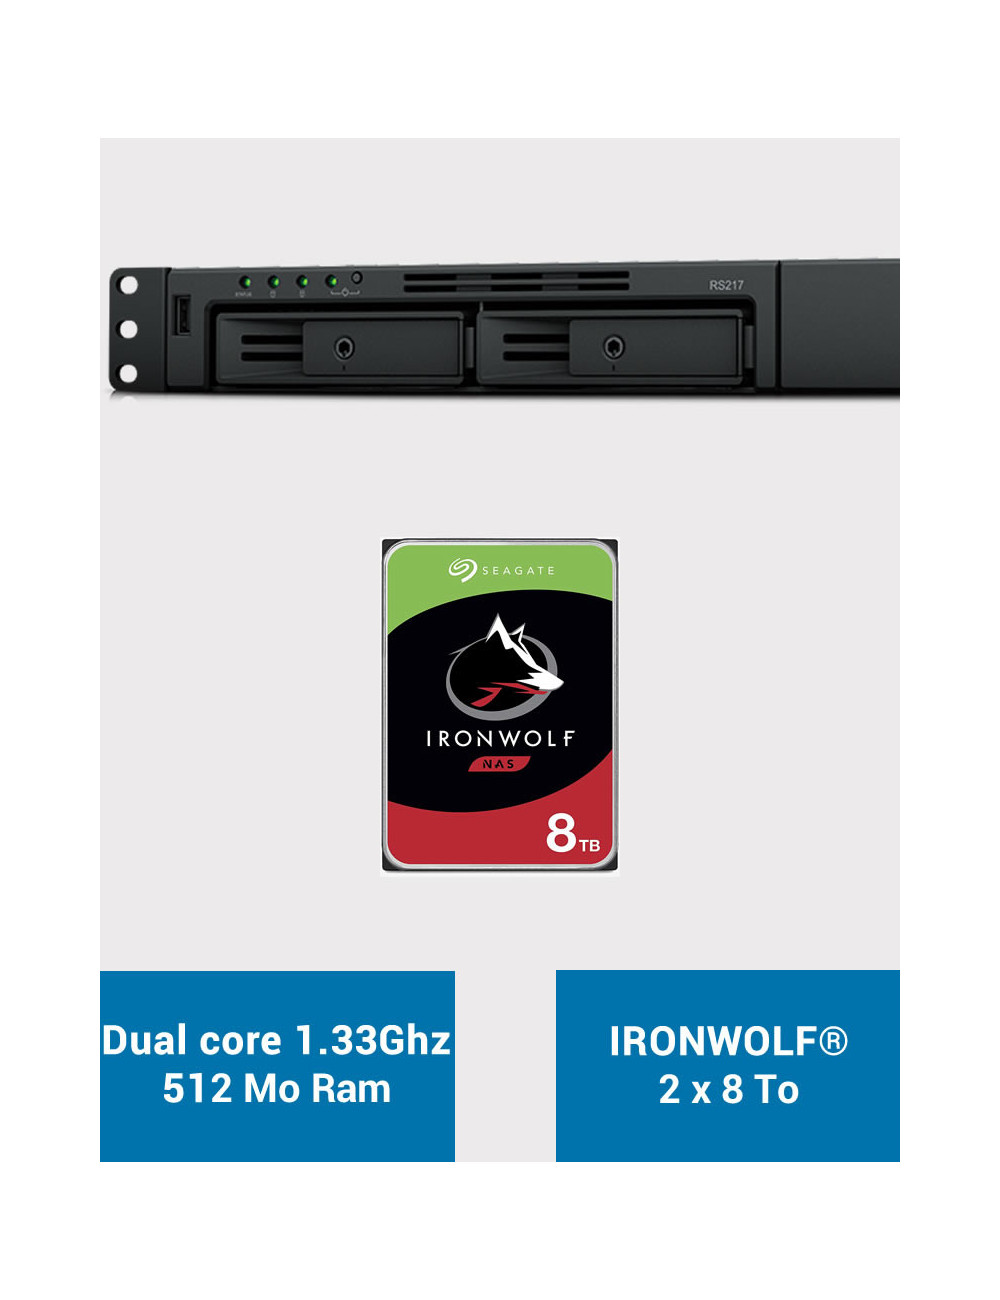 Synology RS217 Serveur NAS IRONWOLF 16To (2x8To)